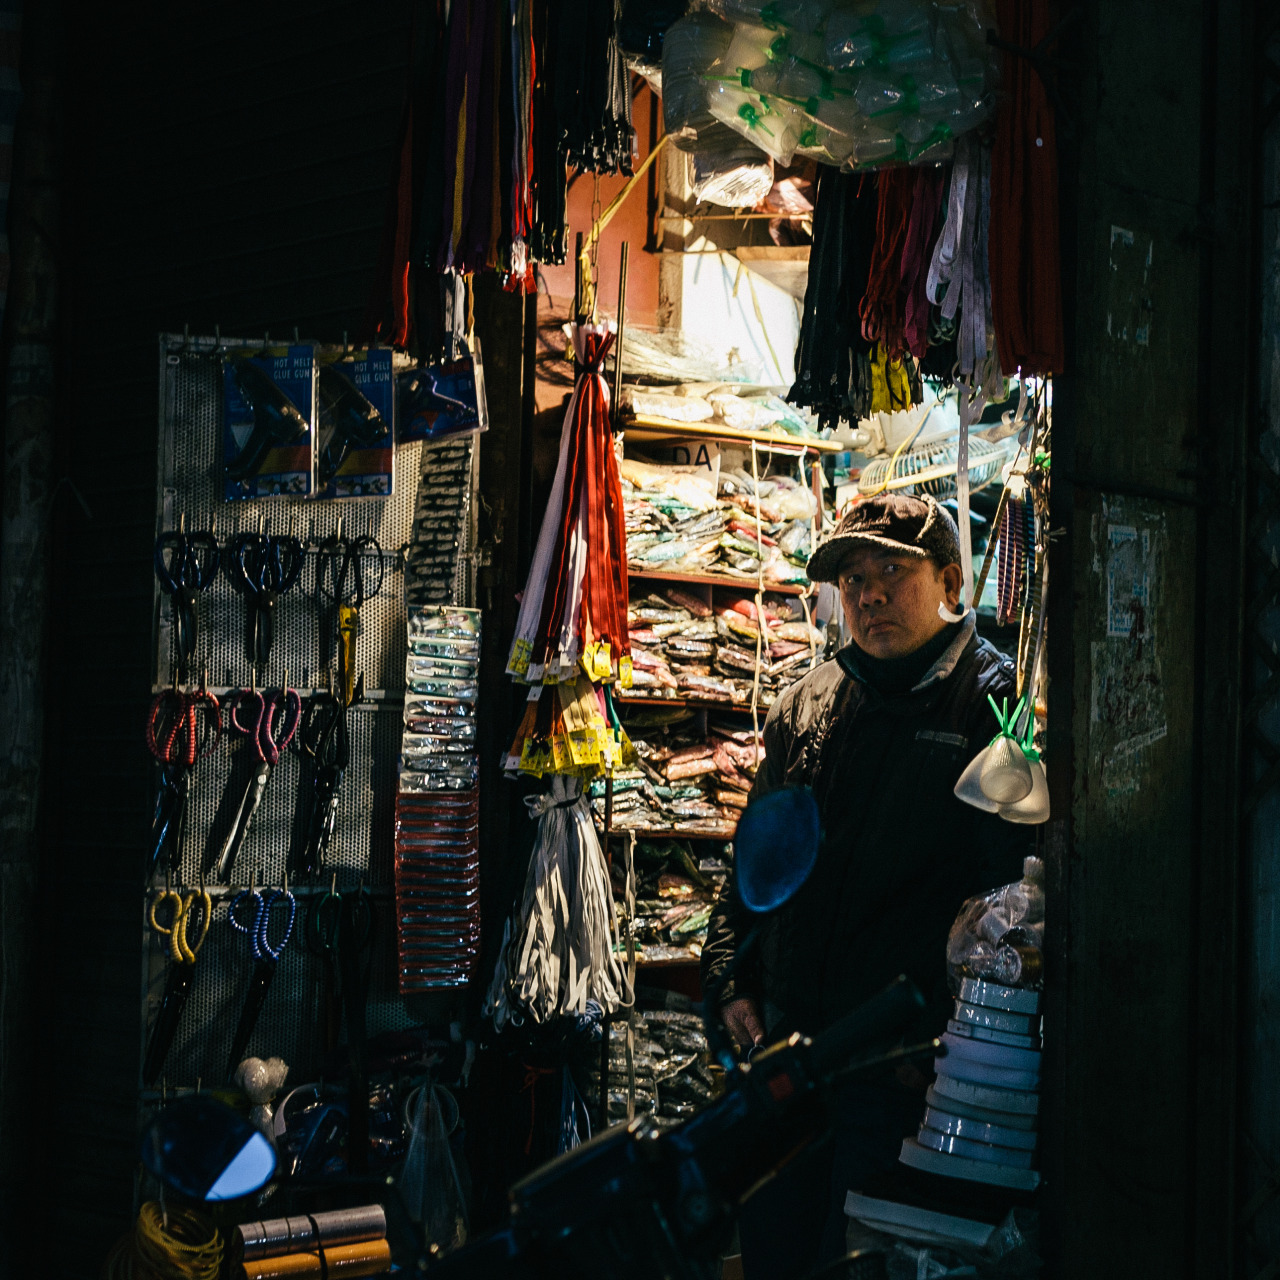 Silence A seller stays silent at his shop's front door in the end of the day Hanoi, Vietnam My Flickr | My works